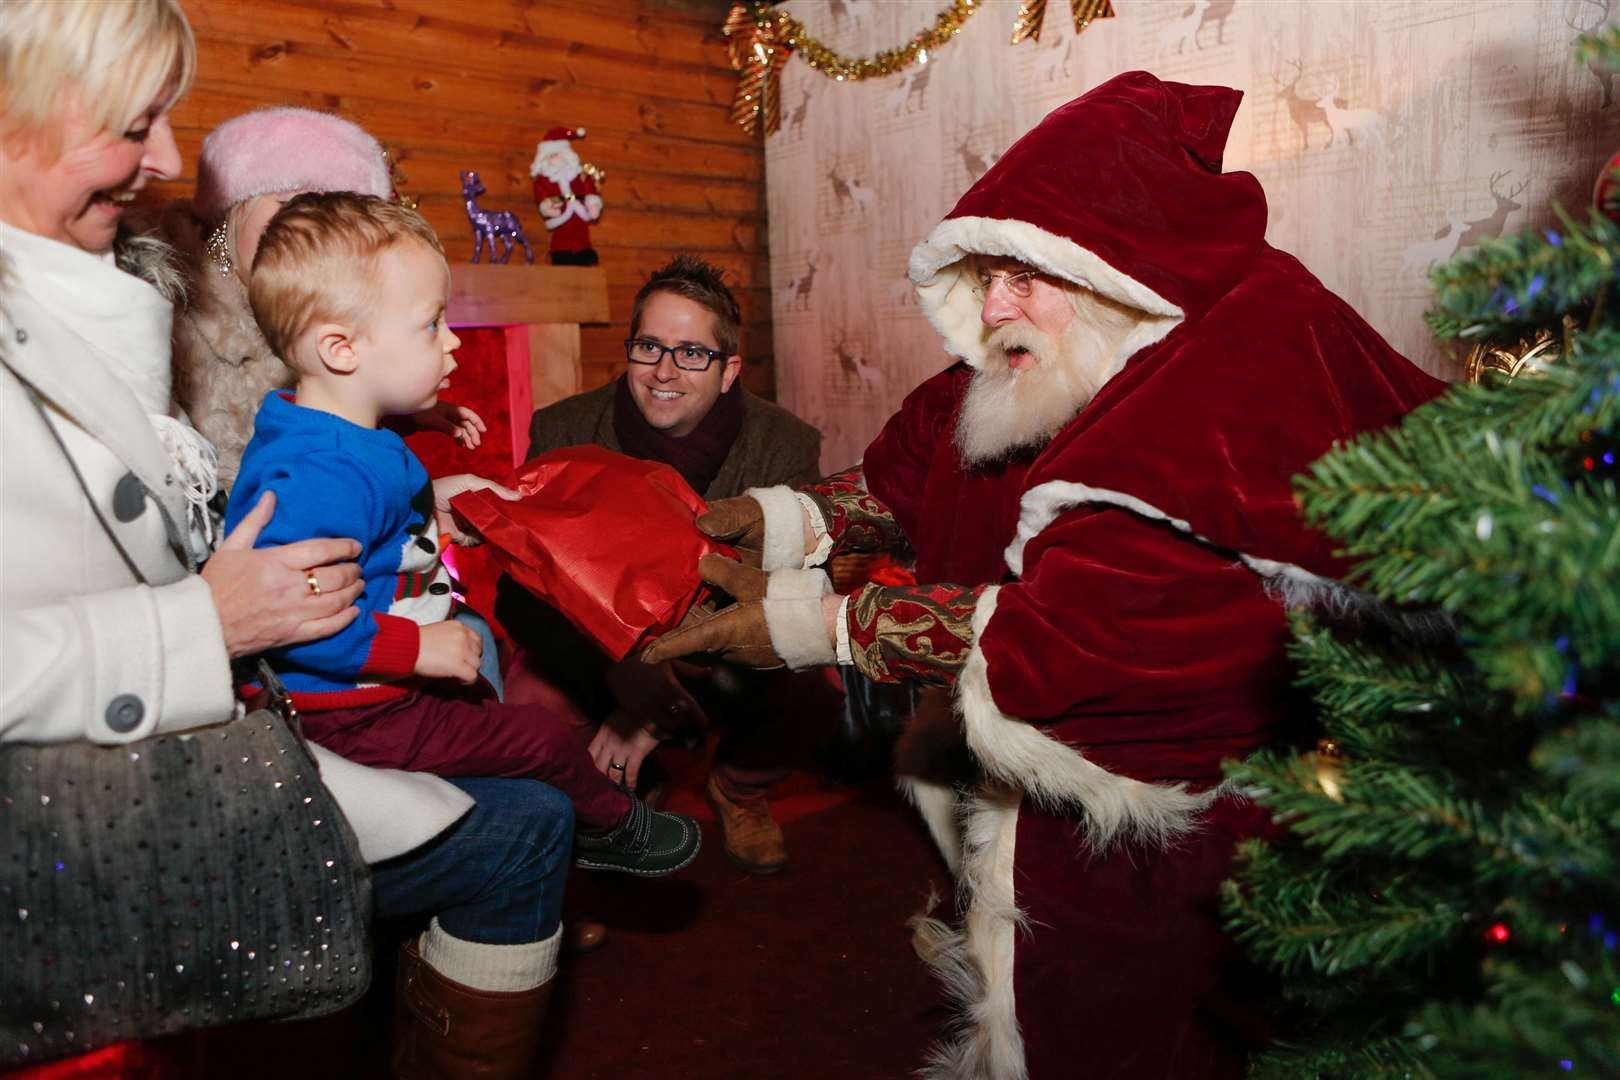 Tickets for the grotto at Leeds Castle will go on sale in October